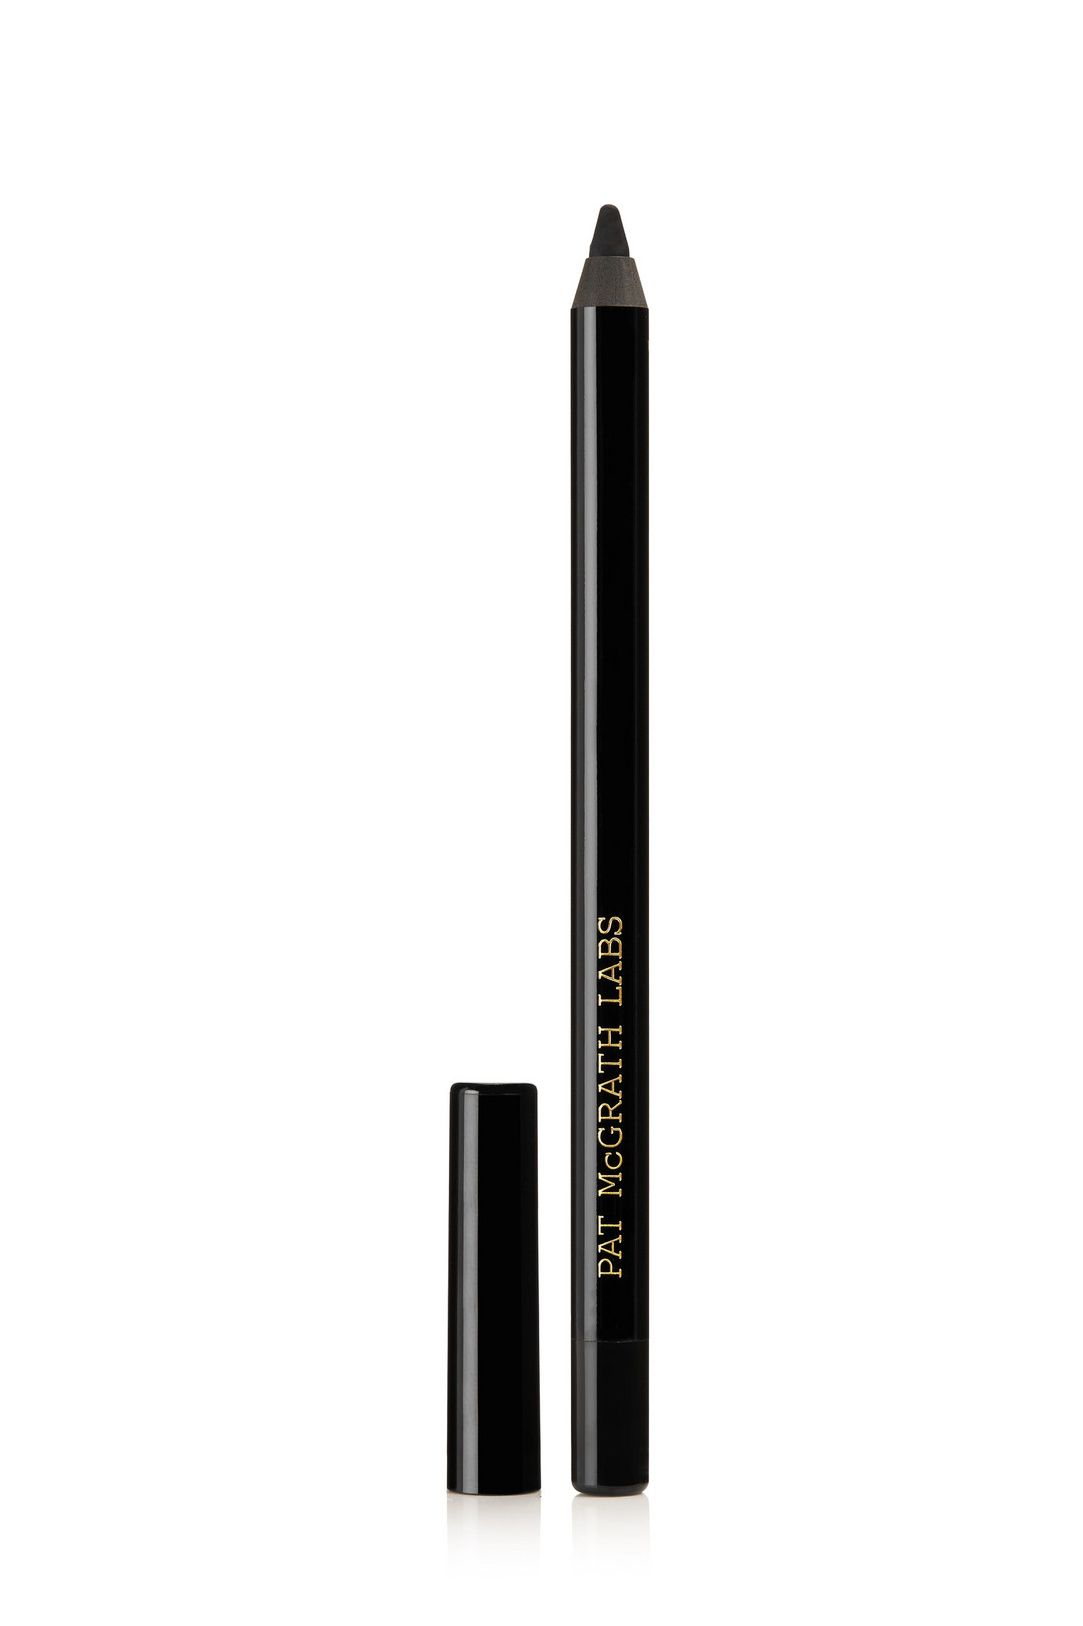 Pat McGrath Labs Permagel Ultra Glide Eye Pencil